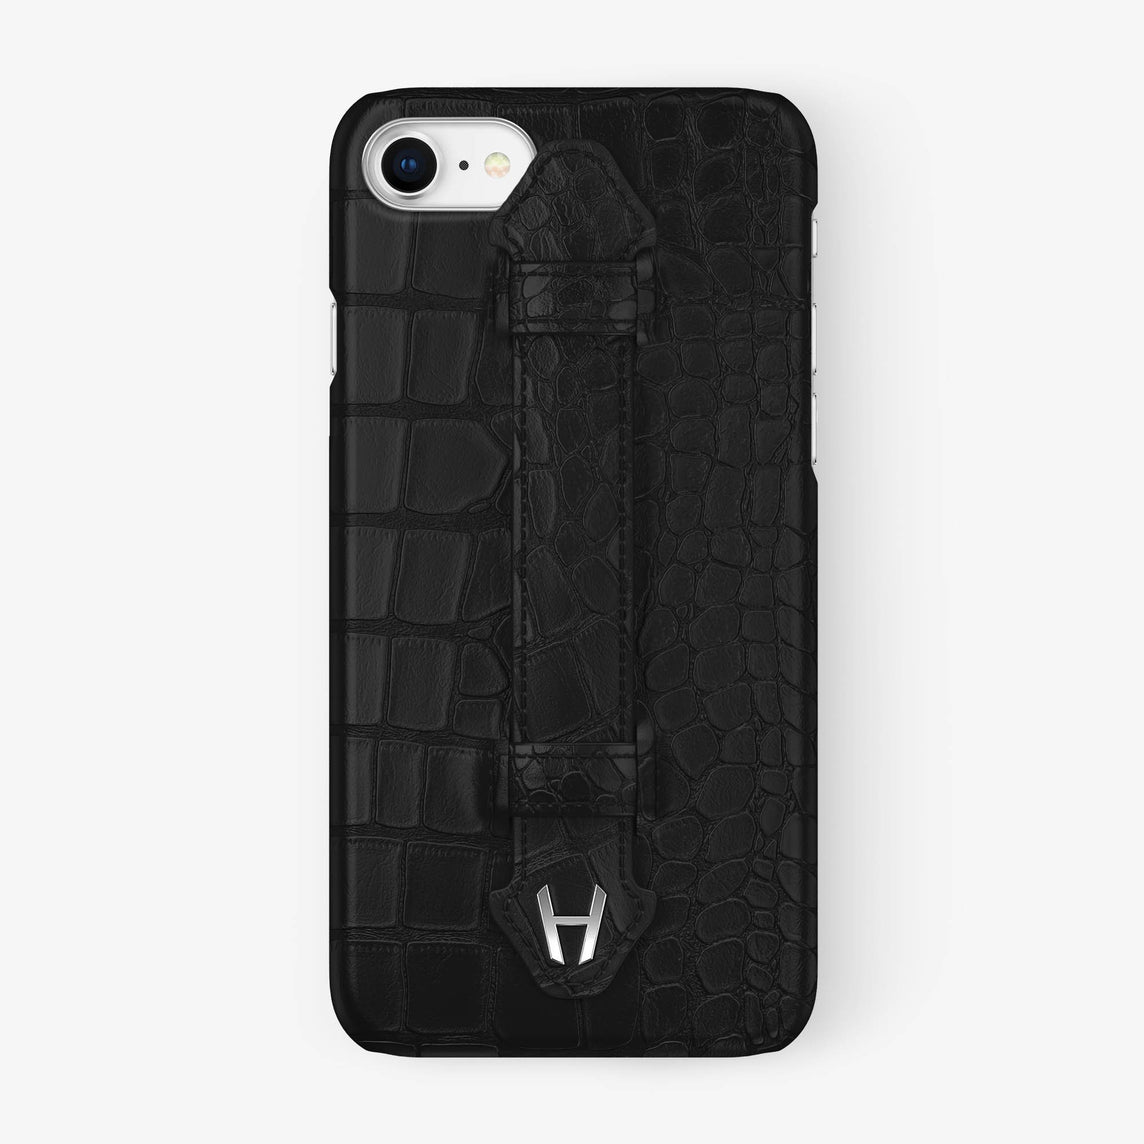 Alligator Finger Case iPhone 7/8 | Phantom Black - Stainless Steel